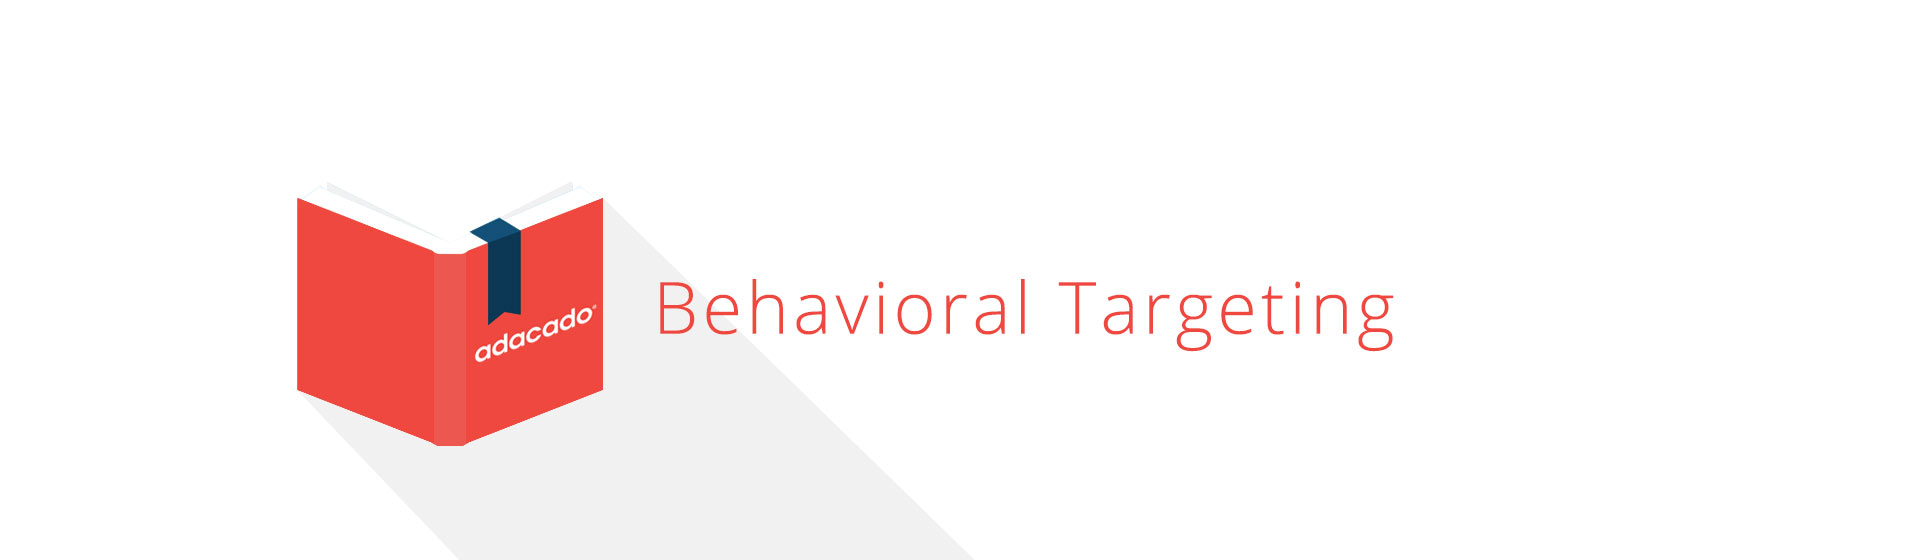 behavioral targeting definition